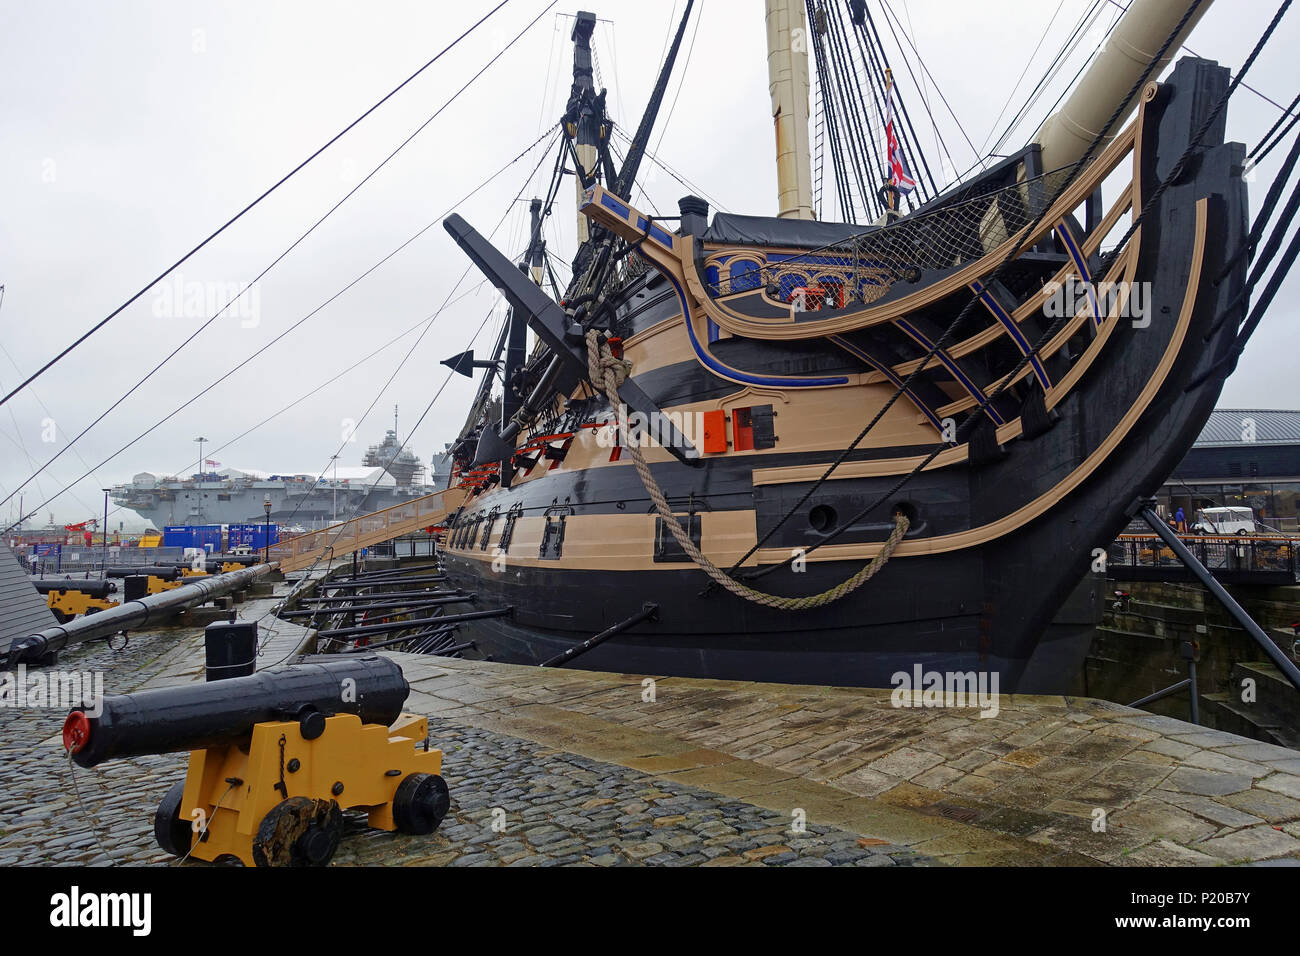 Britain's oldest commissioned warship, HMS Victory, and her newest and largest-ever, HMS Queen Elizabeth, on a rainy day in Portsmouth Harbou - Stock Image